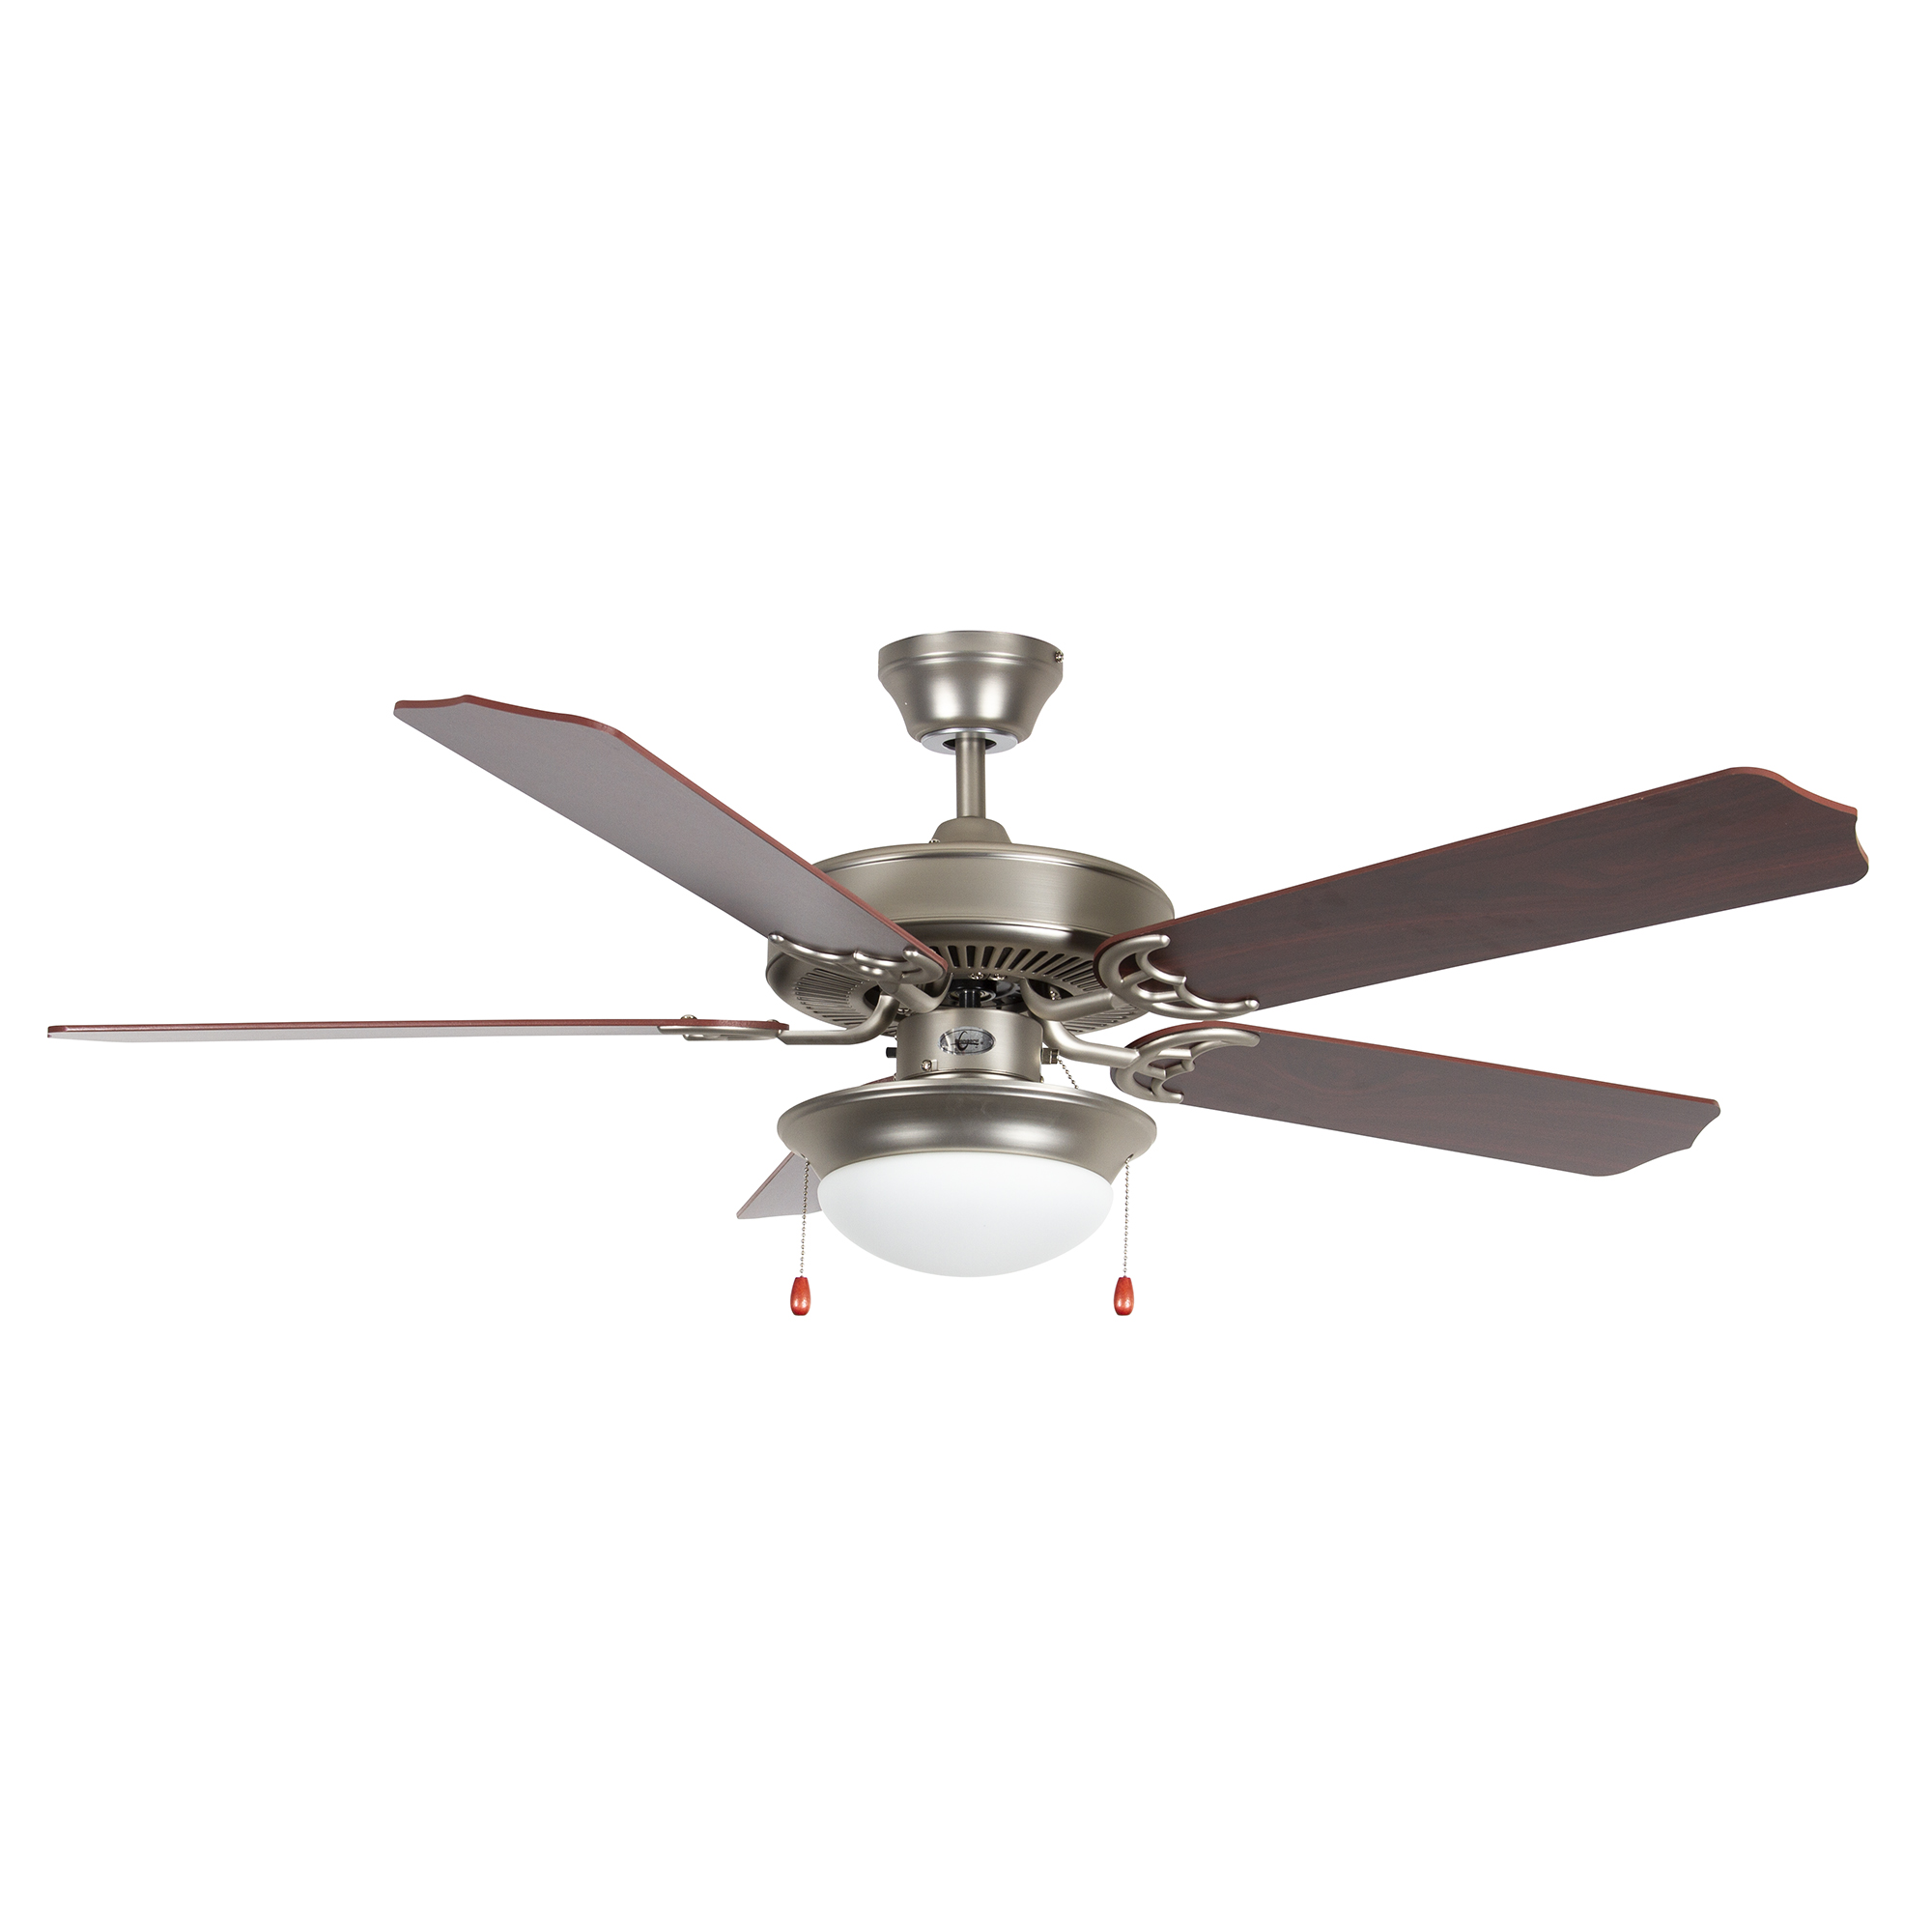 Concord 52HEF5SN-ES-LED Heritage Fusion 52 inch Satin Nickel with Rosewood/Black Forest Blades Indoor Ceiling Fan